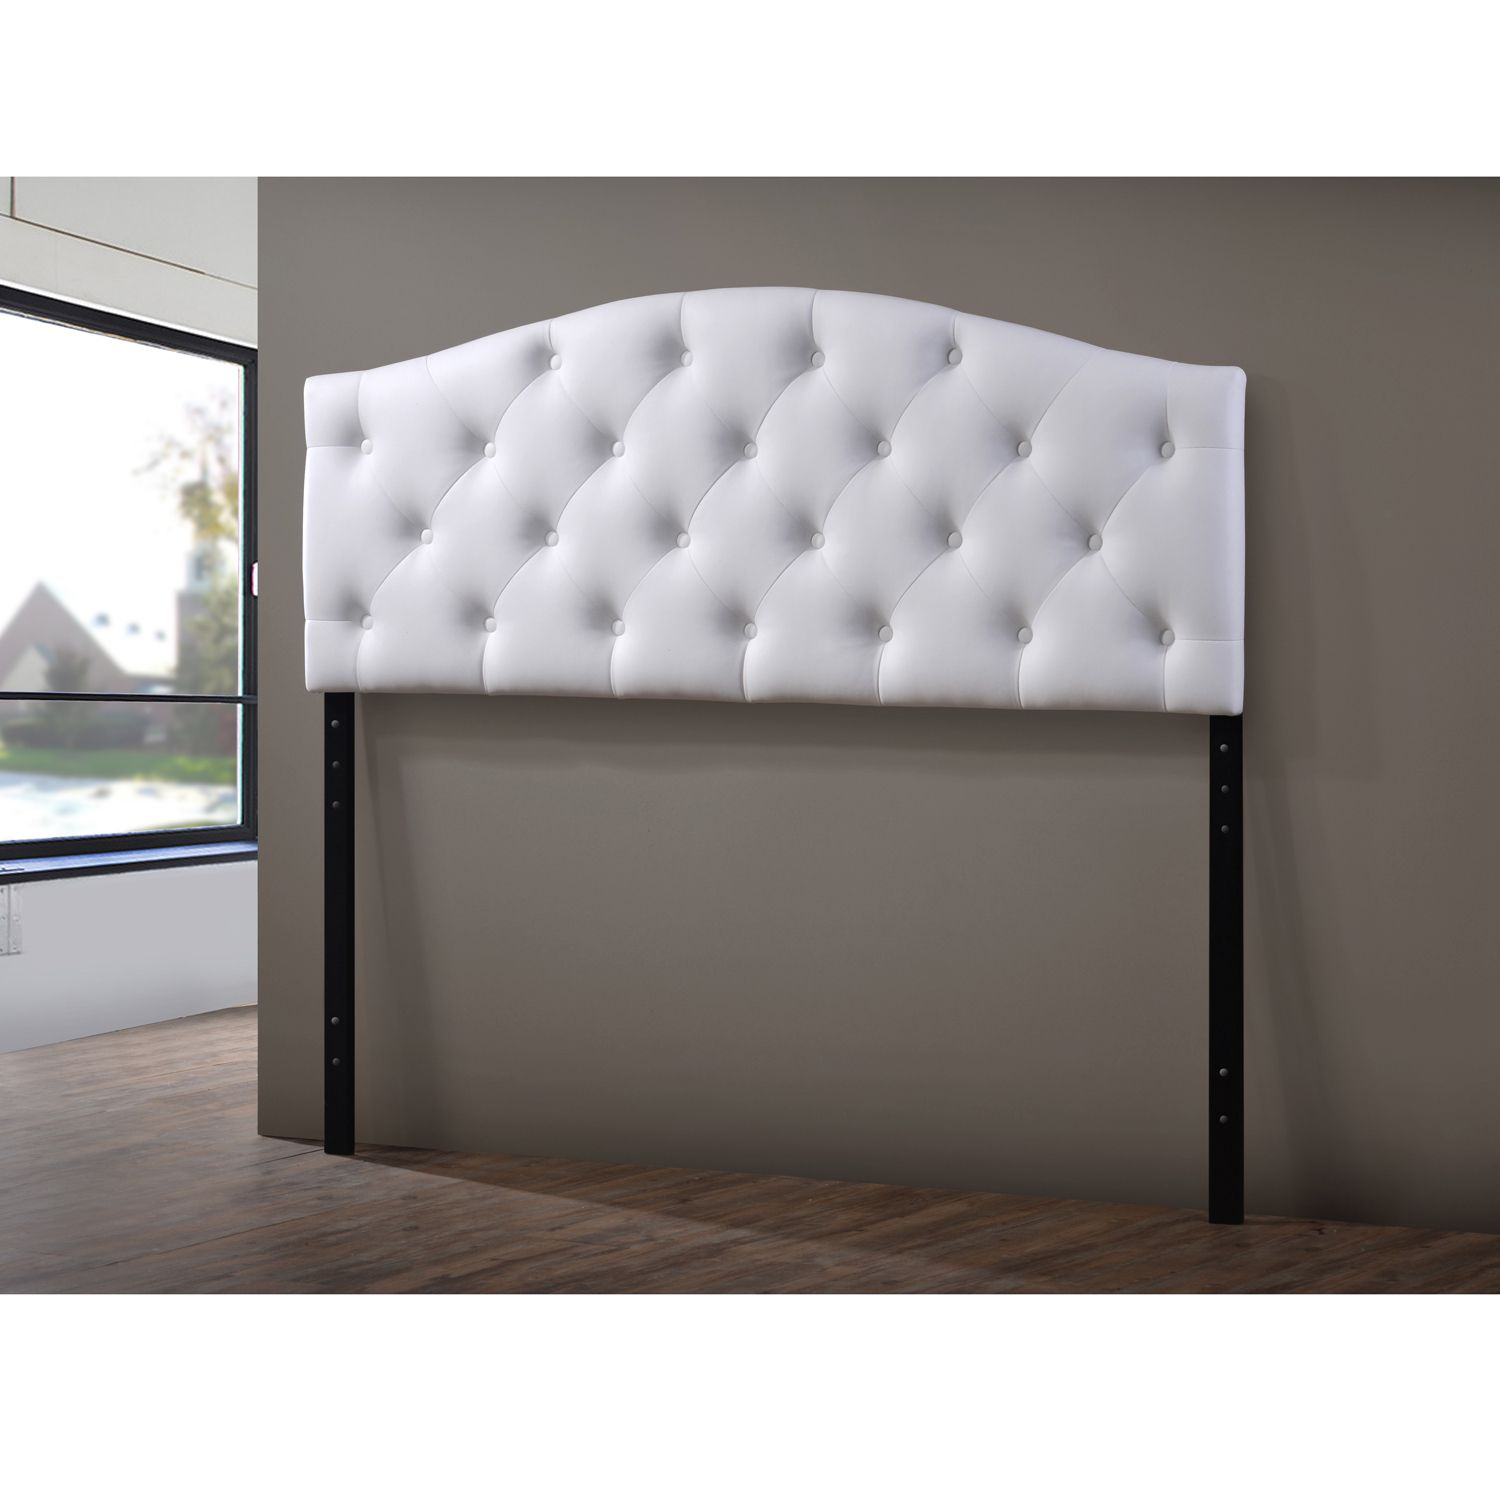 The durable headboard is made of rubberwood and is filled for Fake headboard